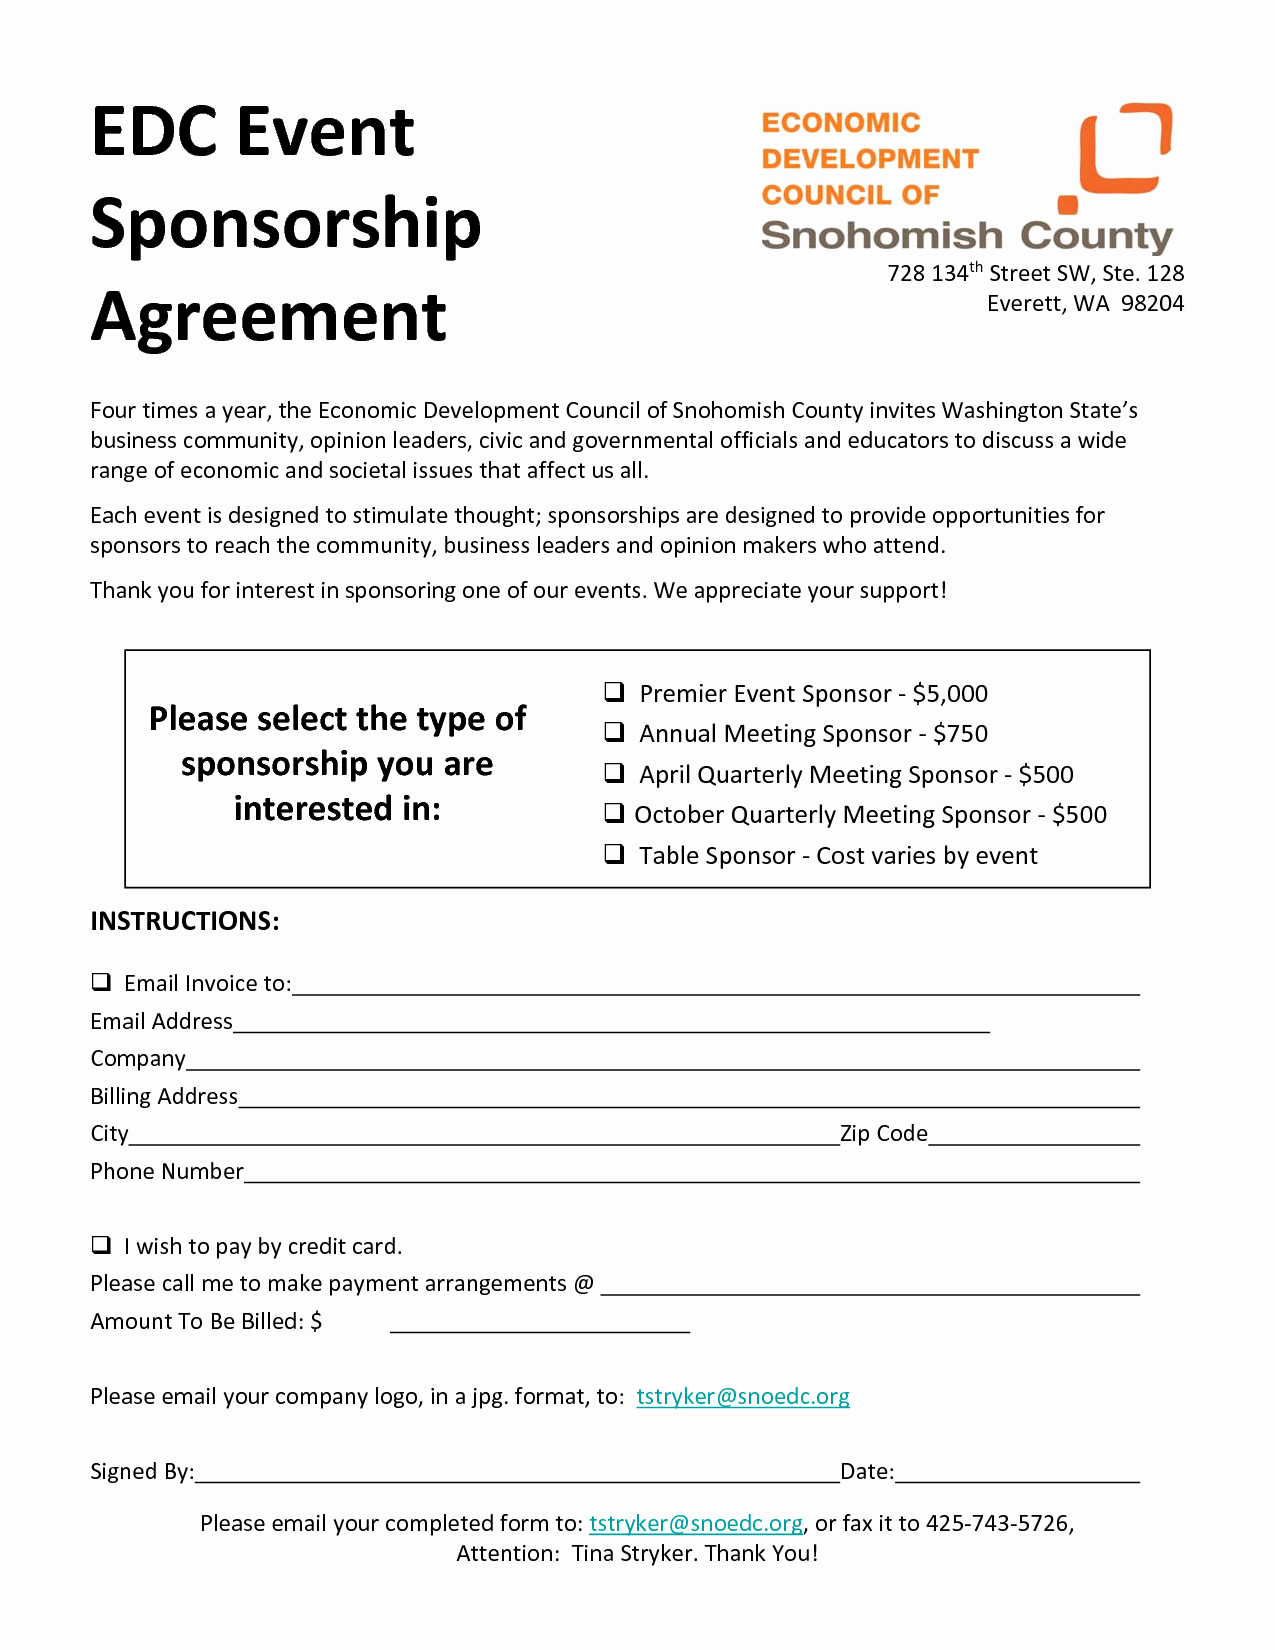 Event Sponsorship form Template Fresh event Sponsorship Agreement Template